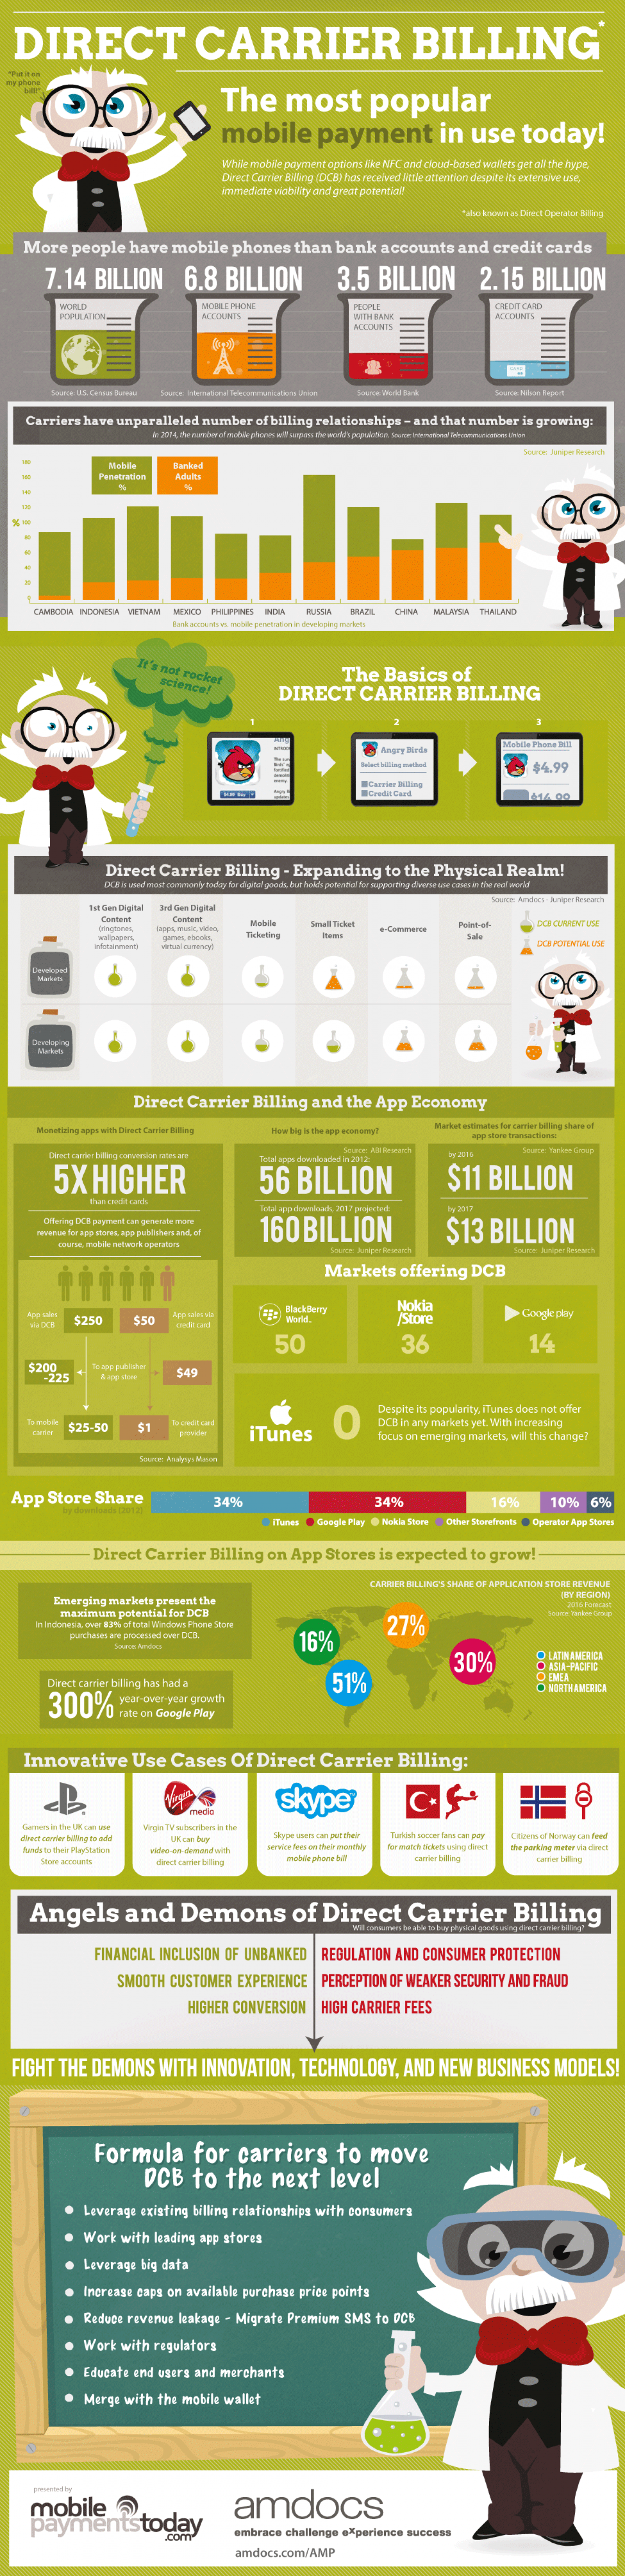 Direct Carrier Billing: The Most Popular Mobile Payment Infographic